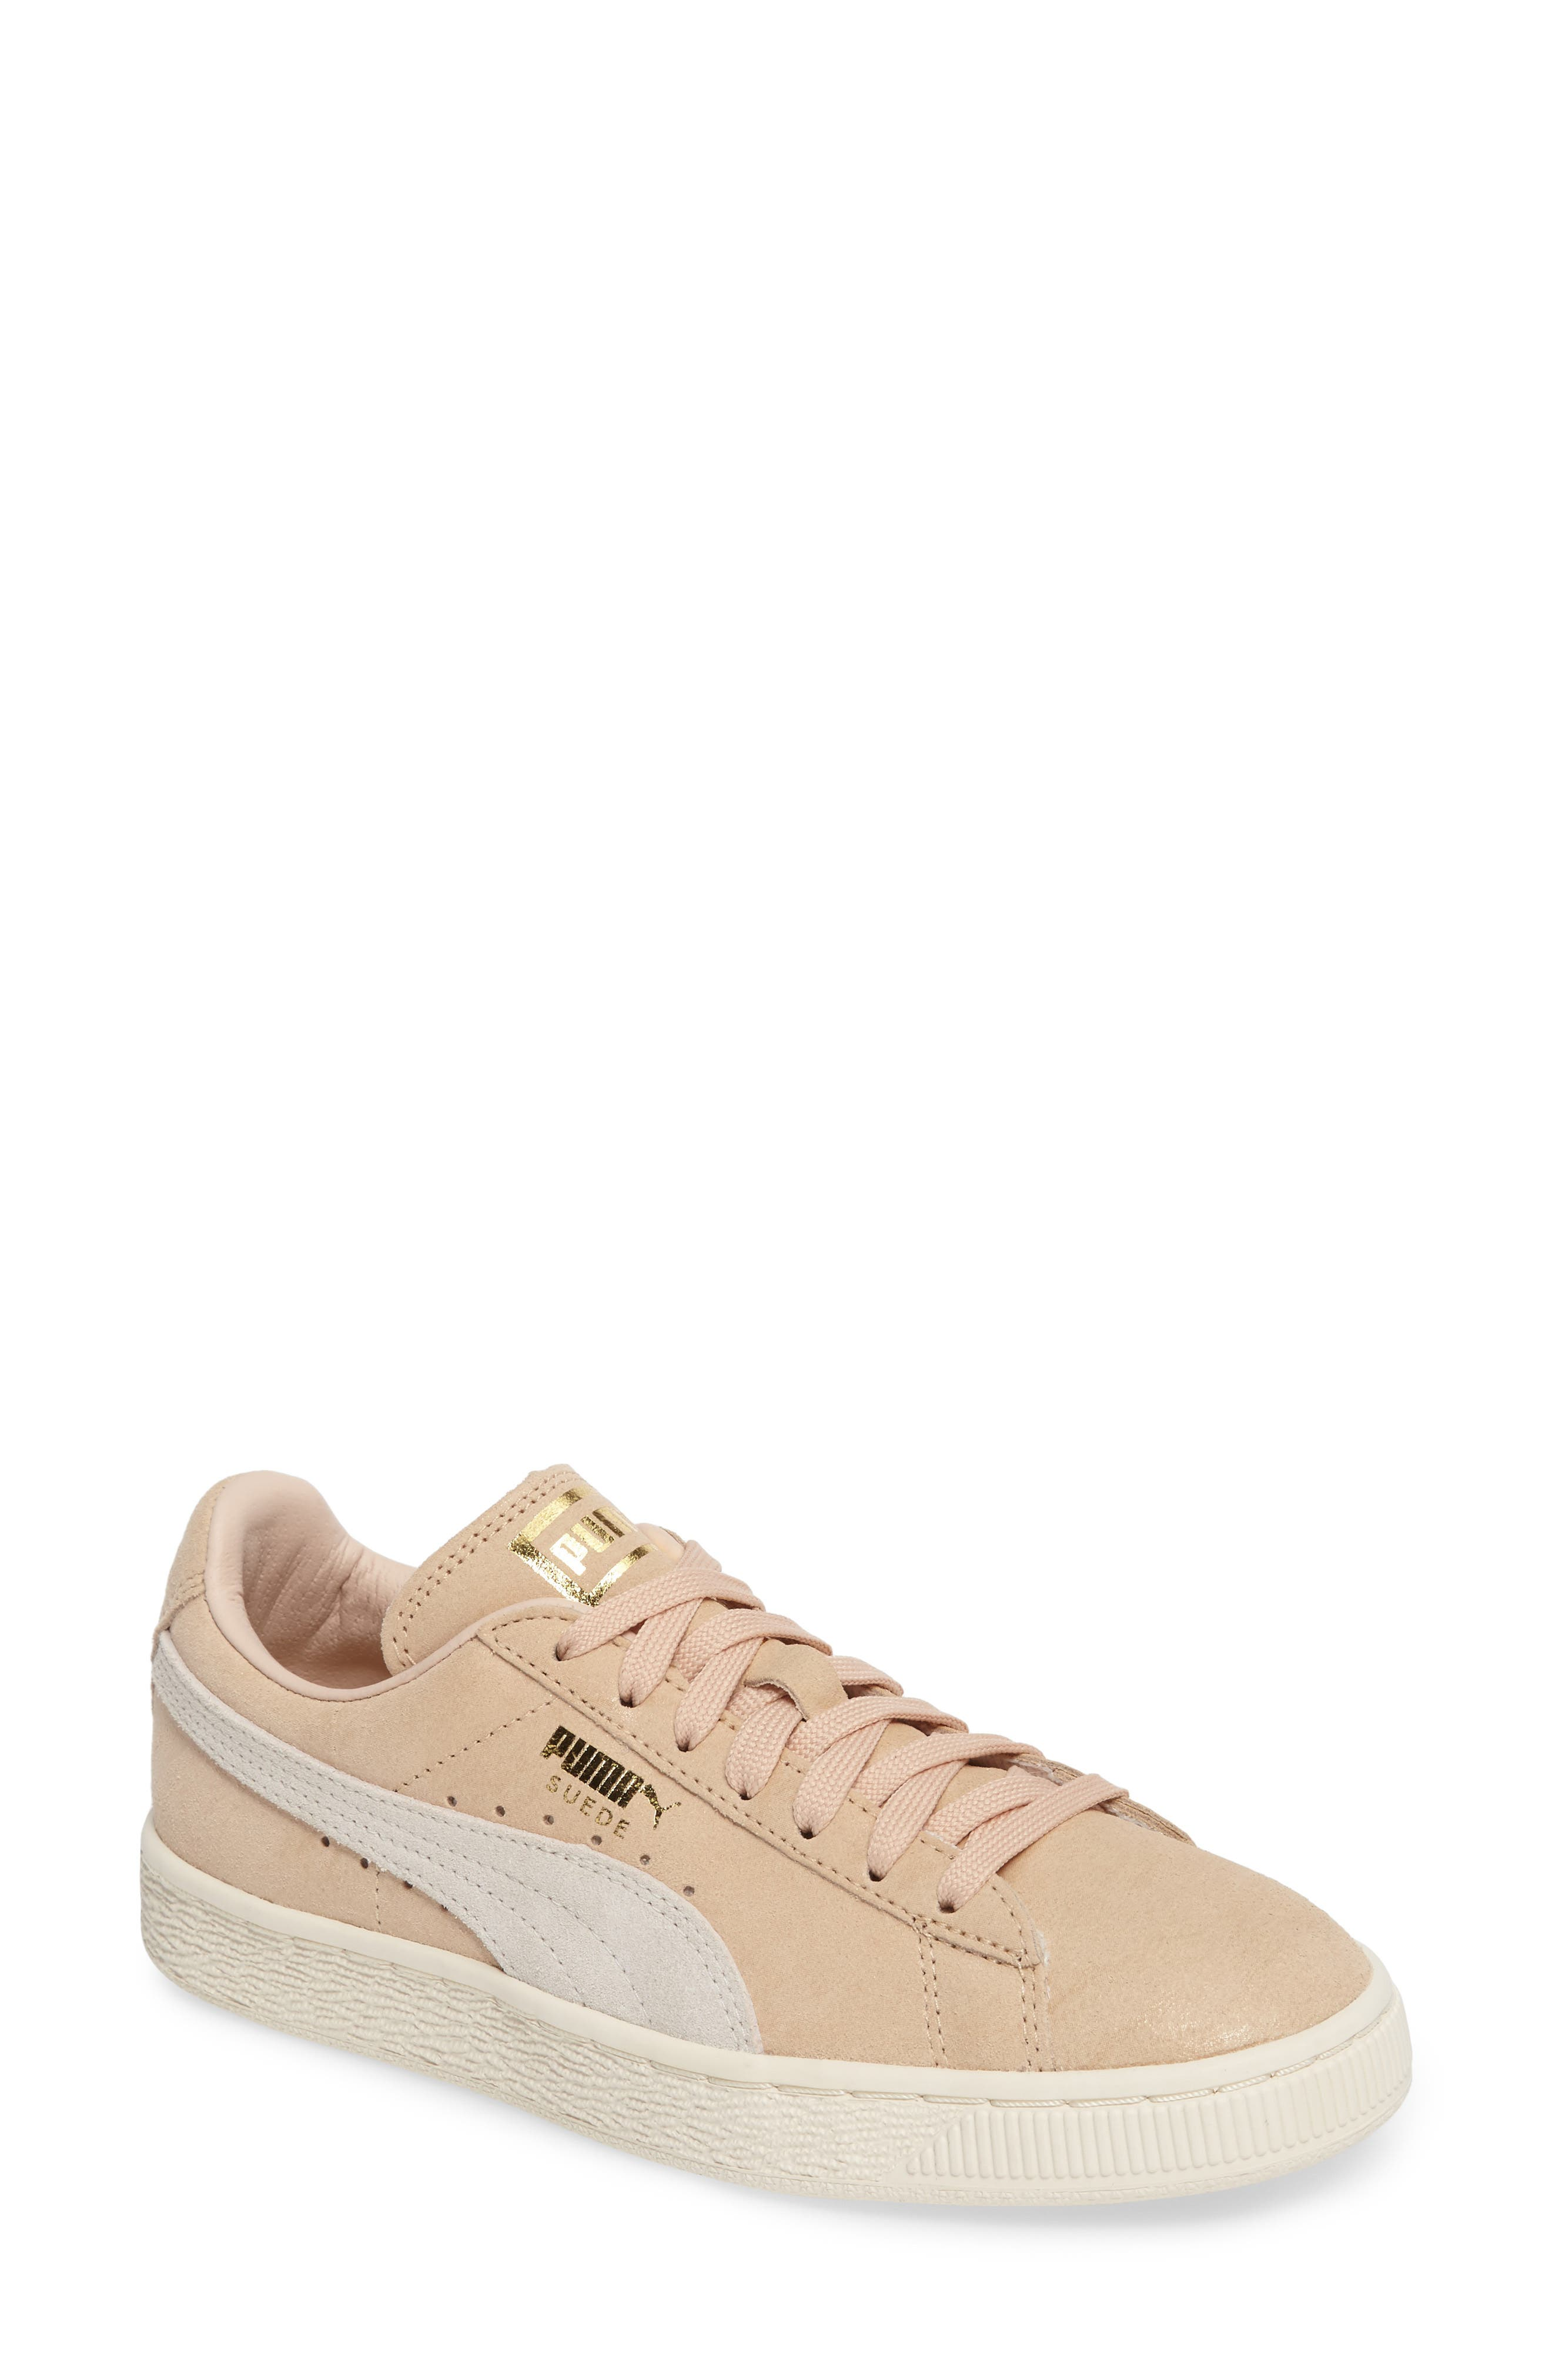 Alternate Image 1 Selected - PUMA Suede Classic Shine Sneaker (Women)